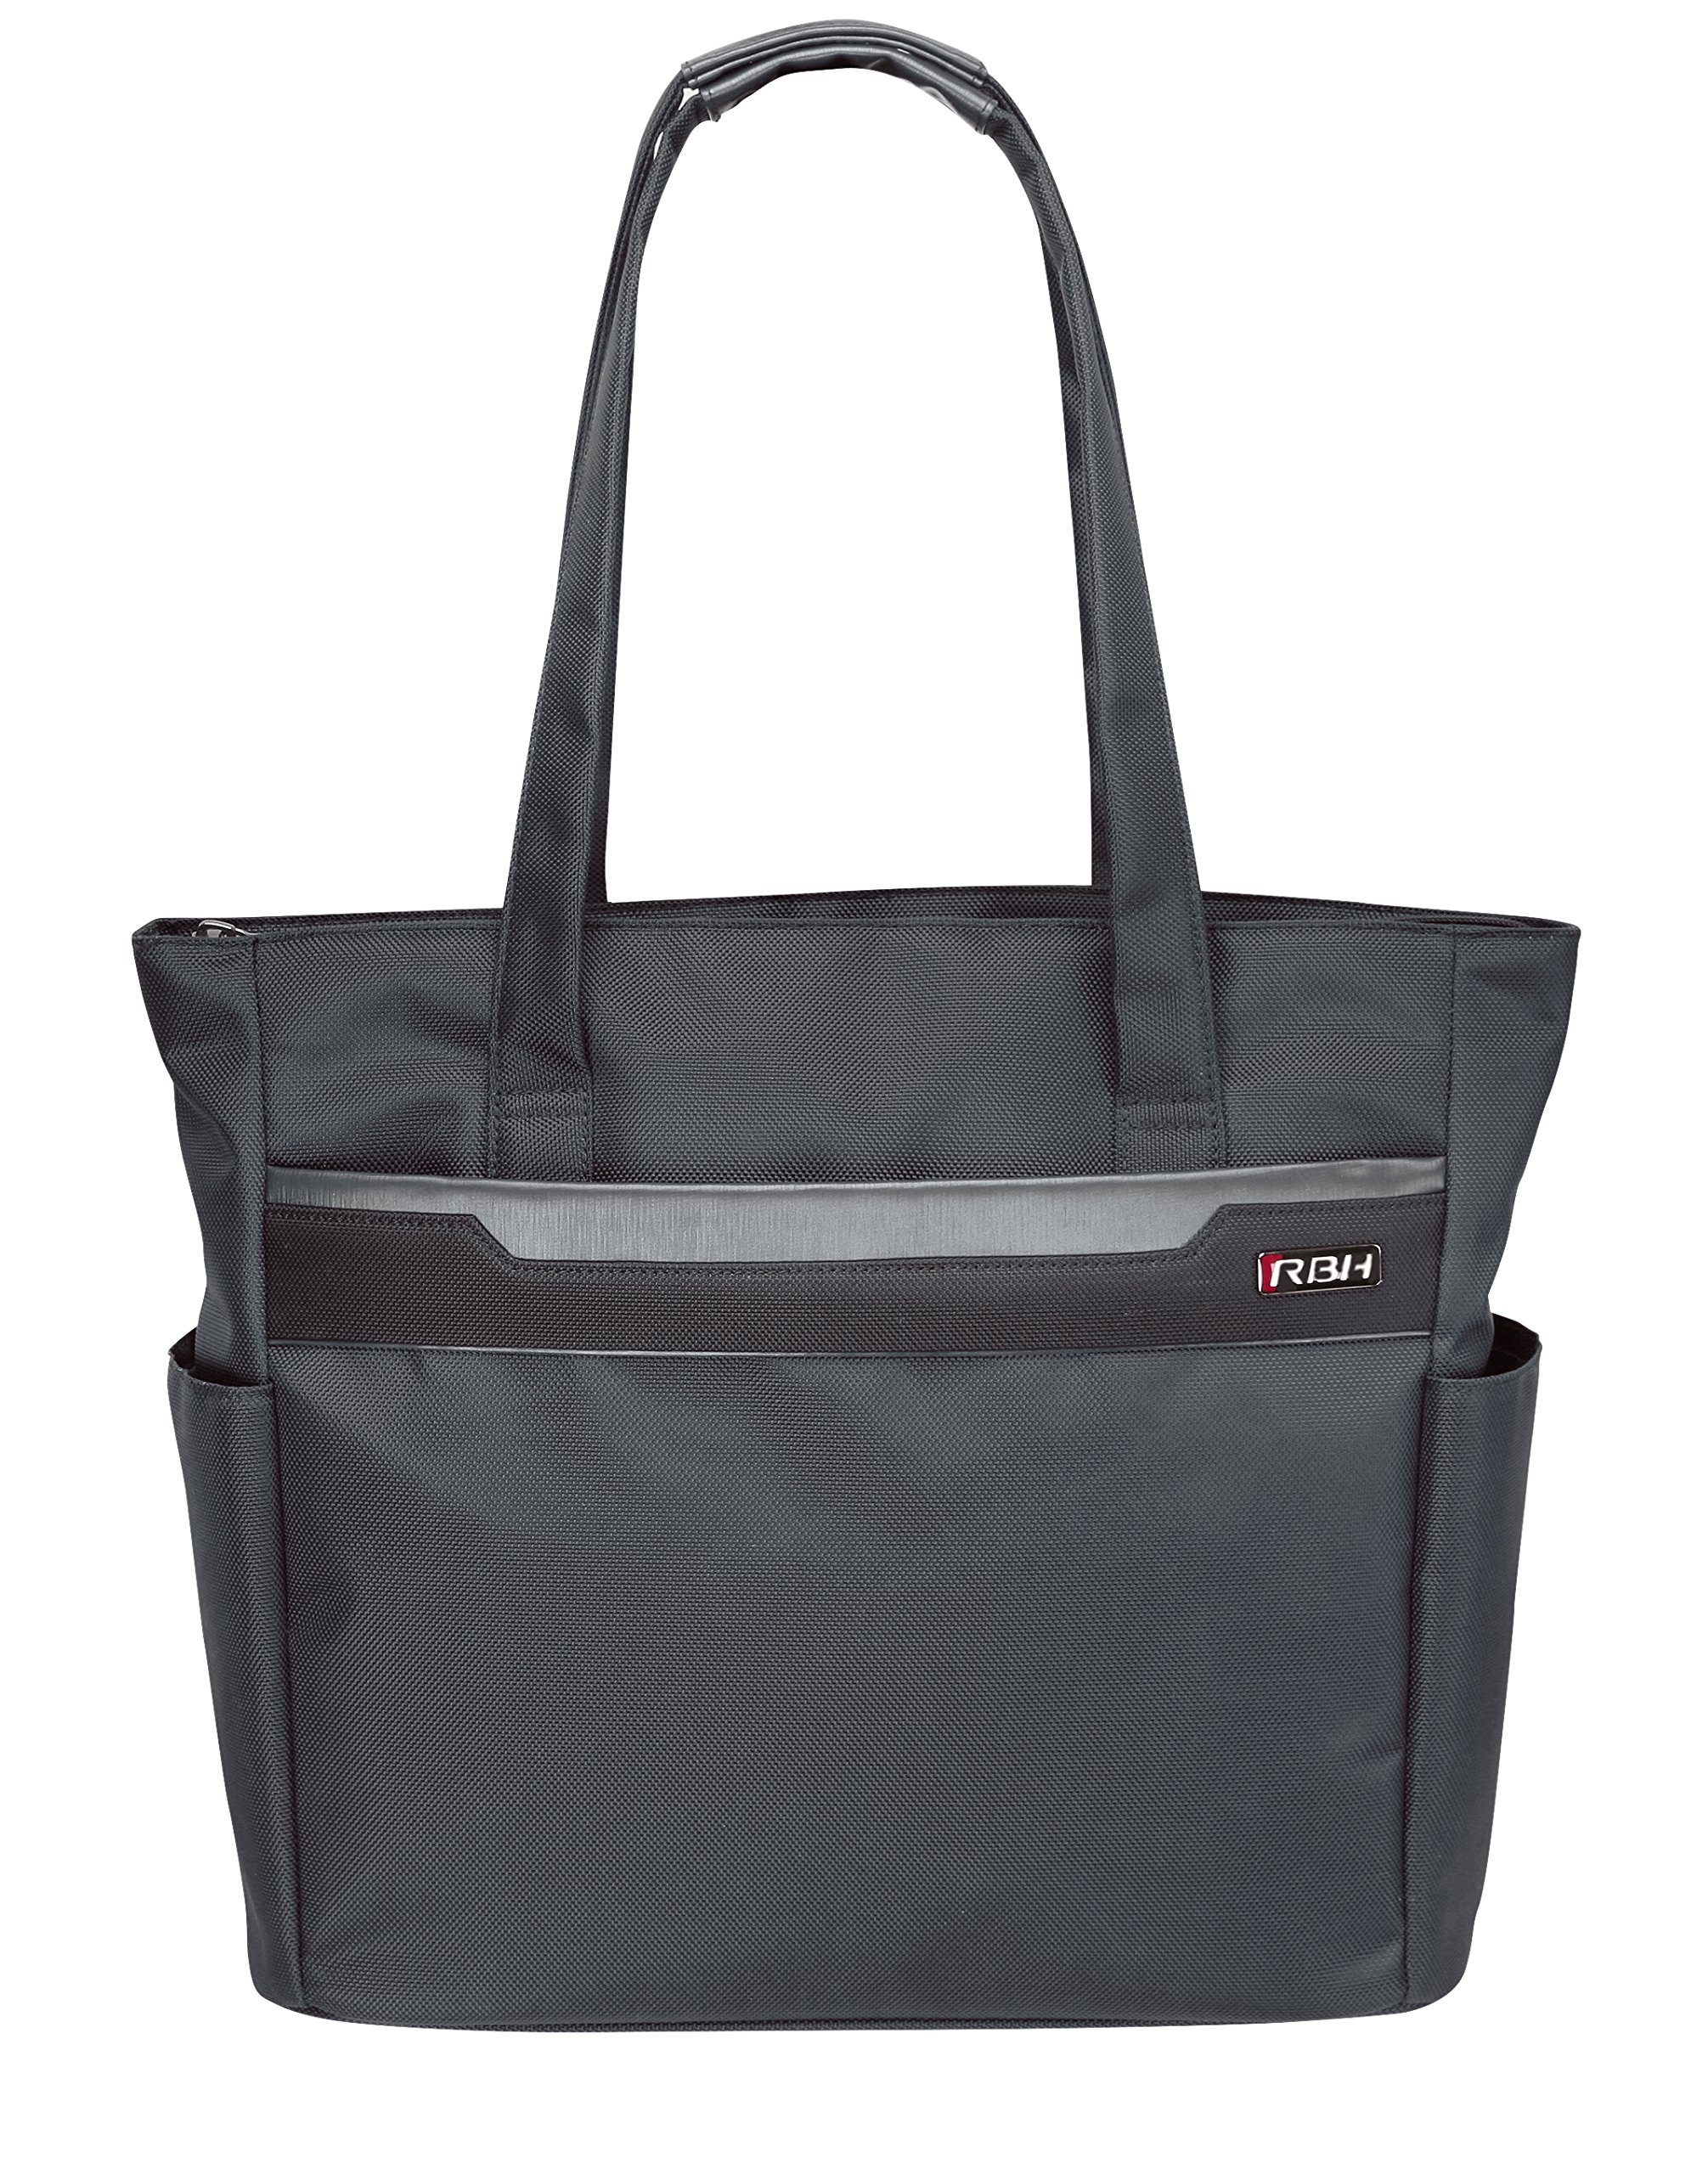 Ricardo Beverly Hills Bel Aire 18-Inch Shopper Tote, Charcoal, One Size by Ricardo Beverly Hills